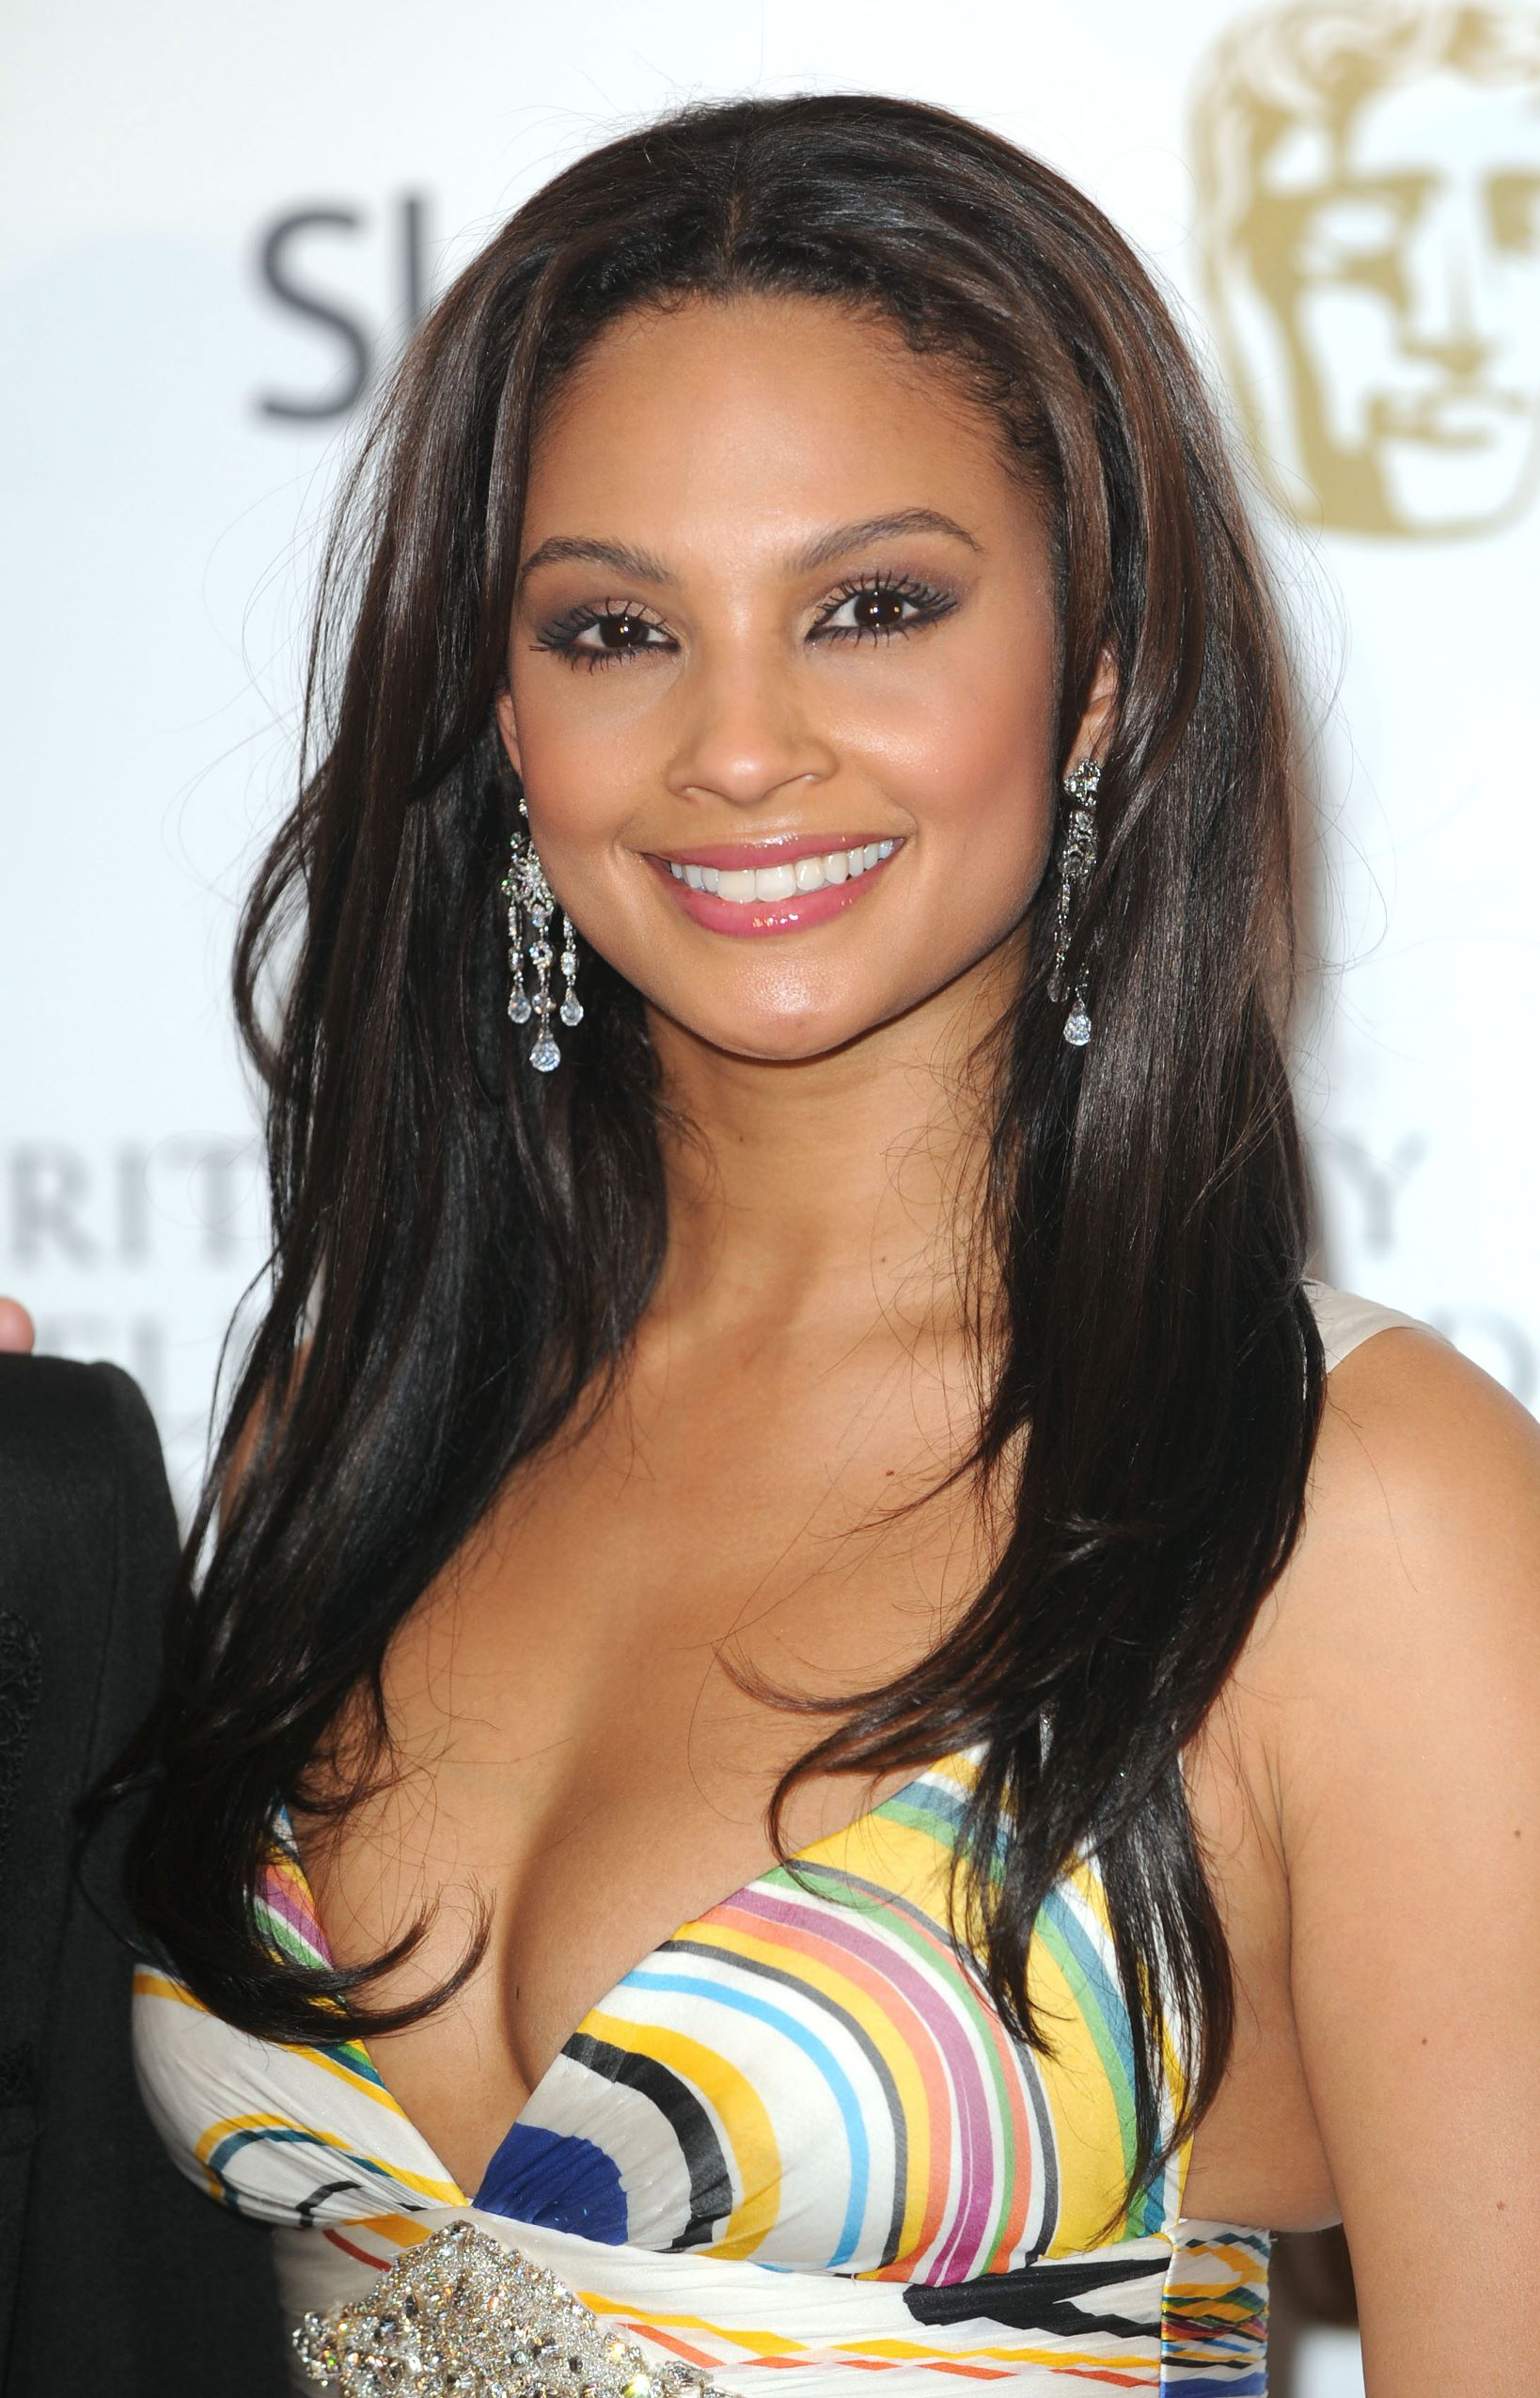 Image result for ALESHA DIXON